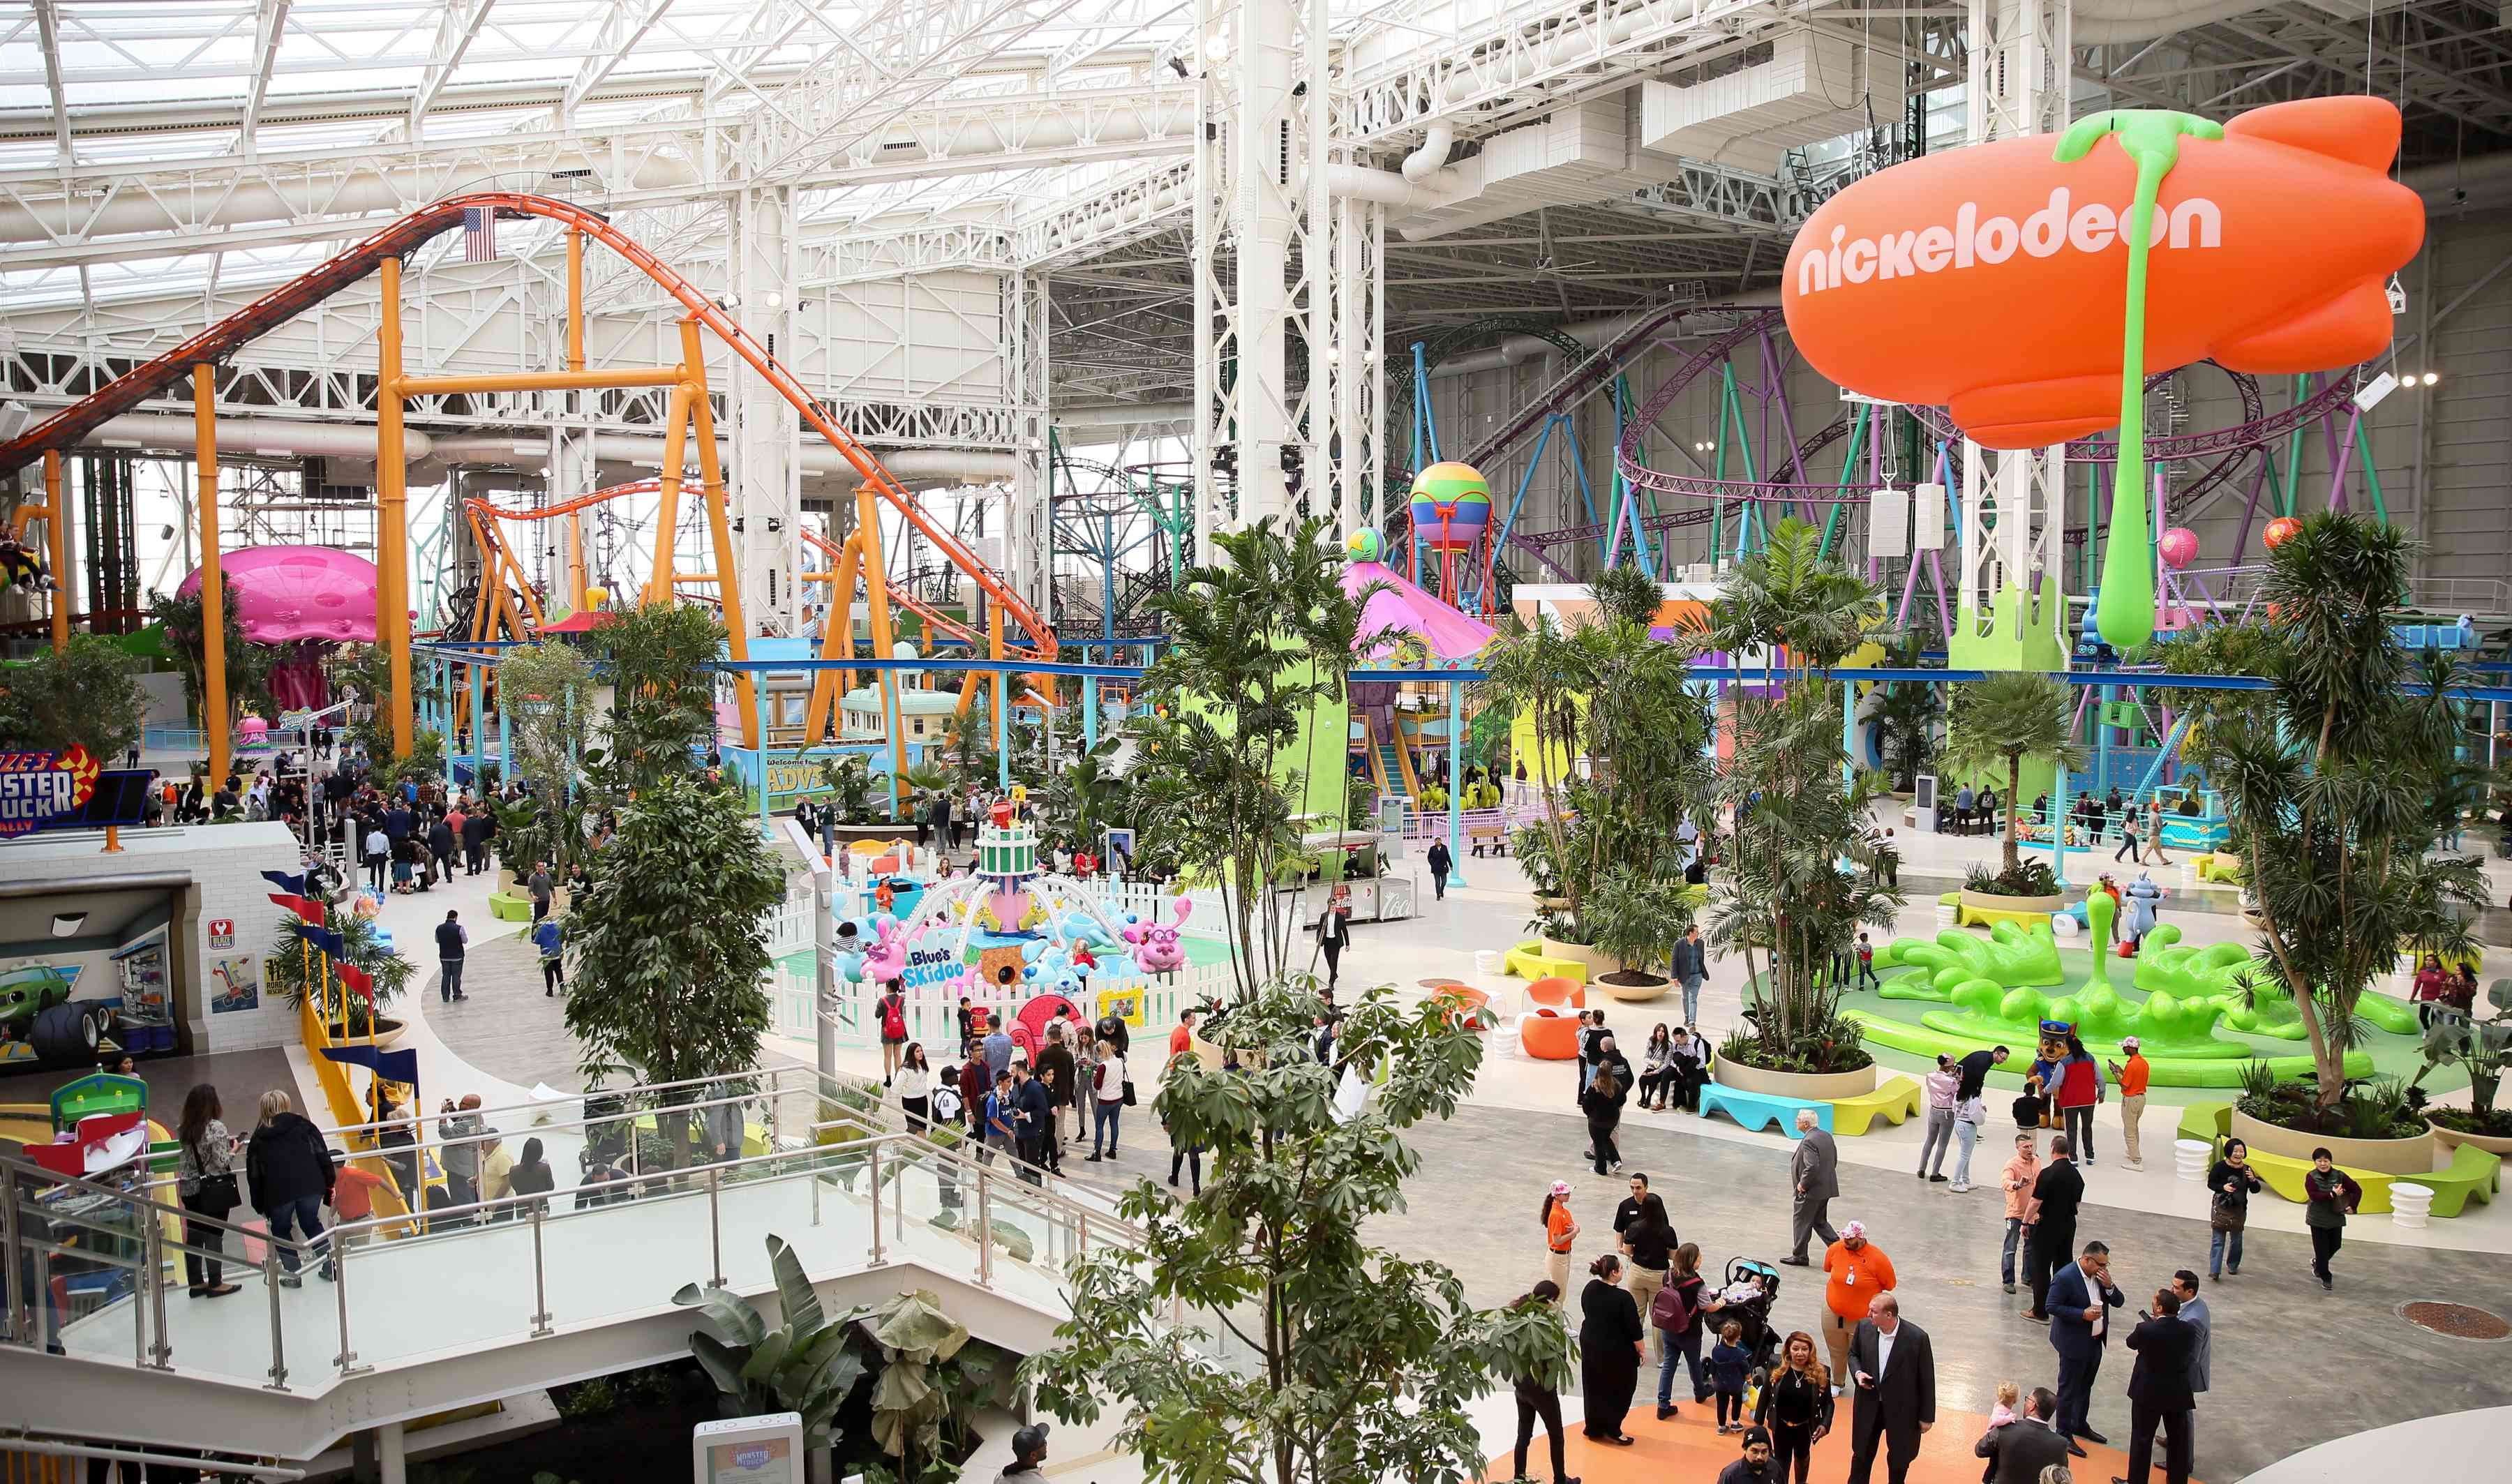 Nickelodeon Universe theme park in New Jersey